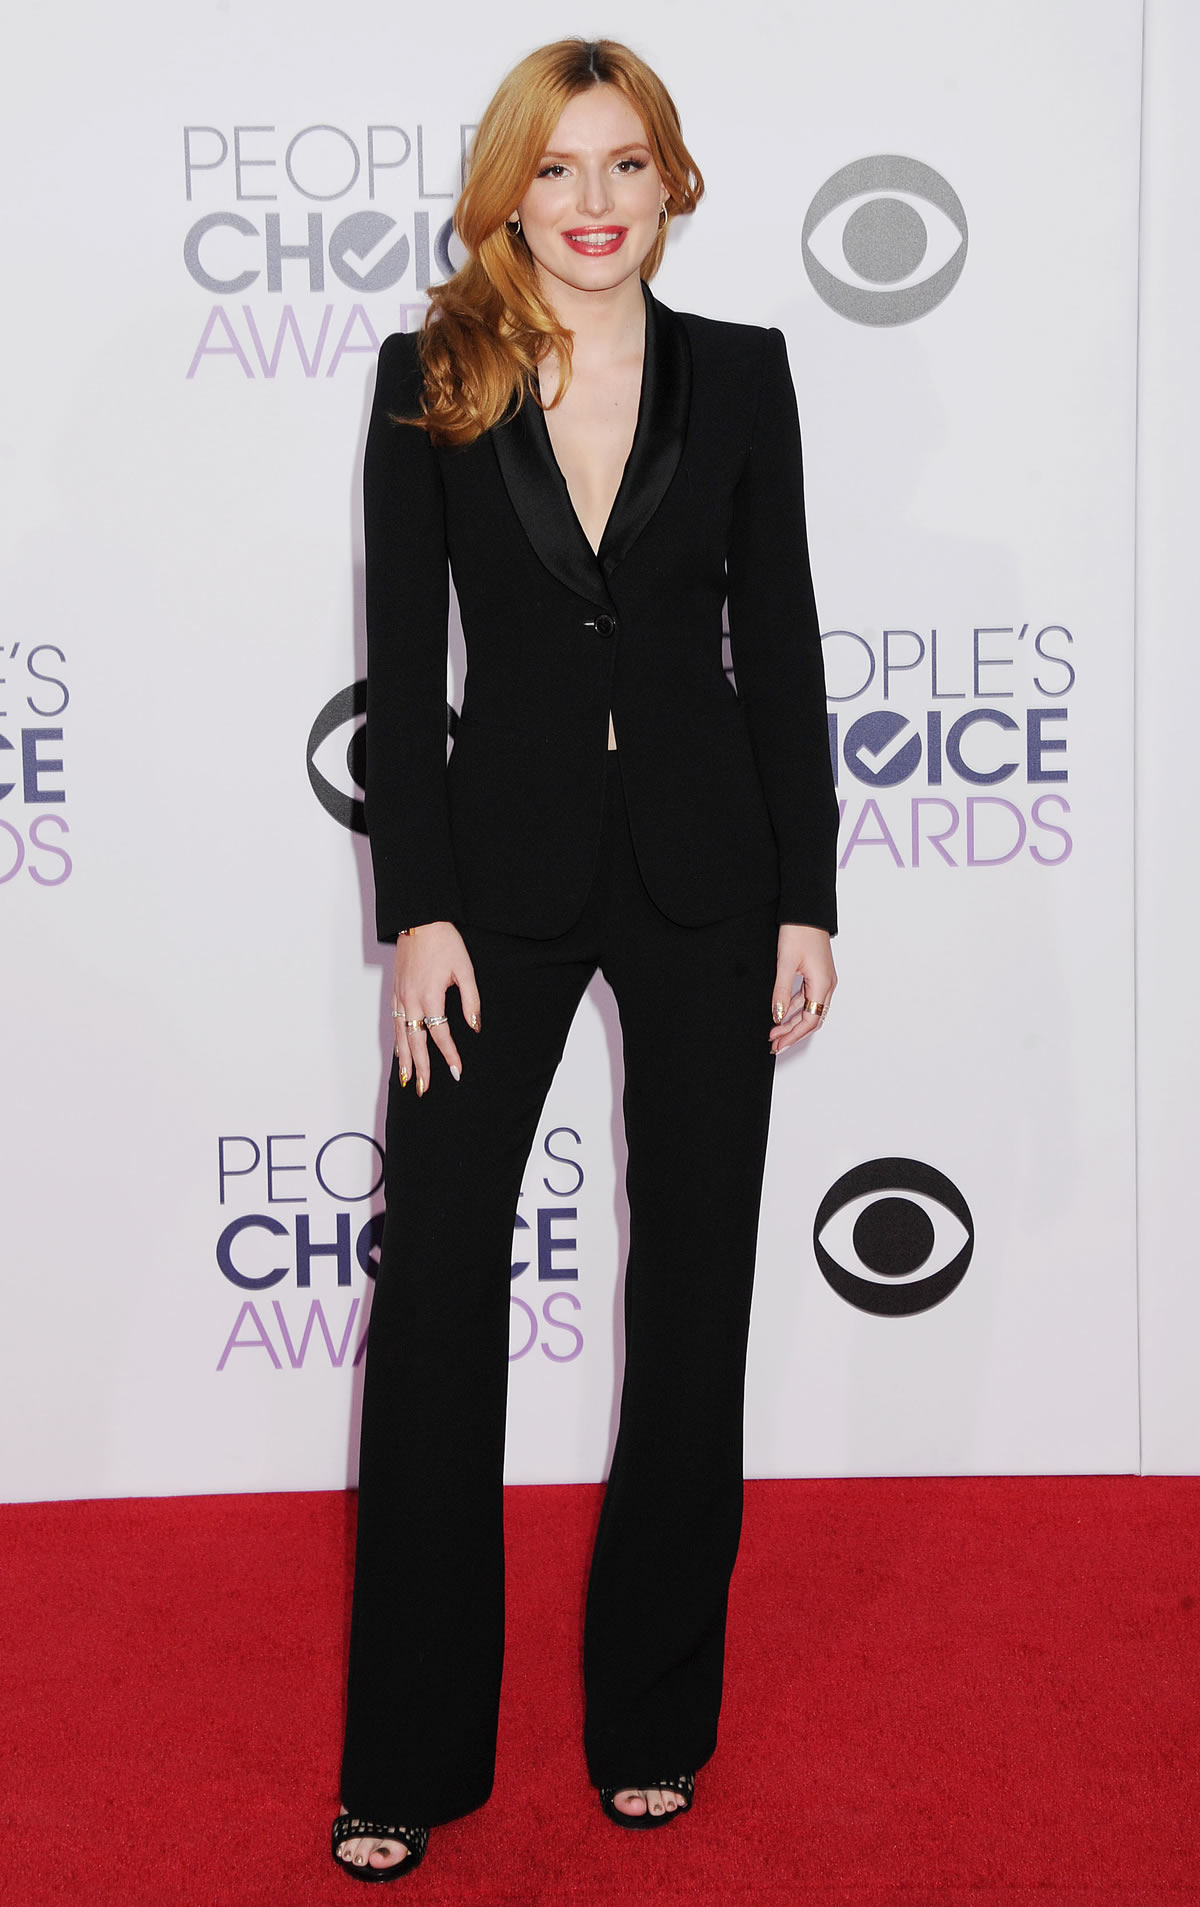 bella-thorne-peoples-choice-awards-1